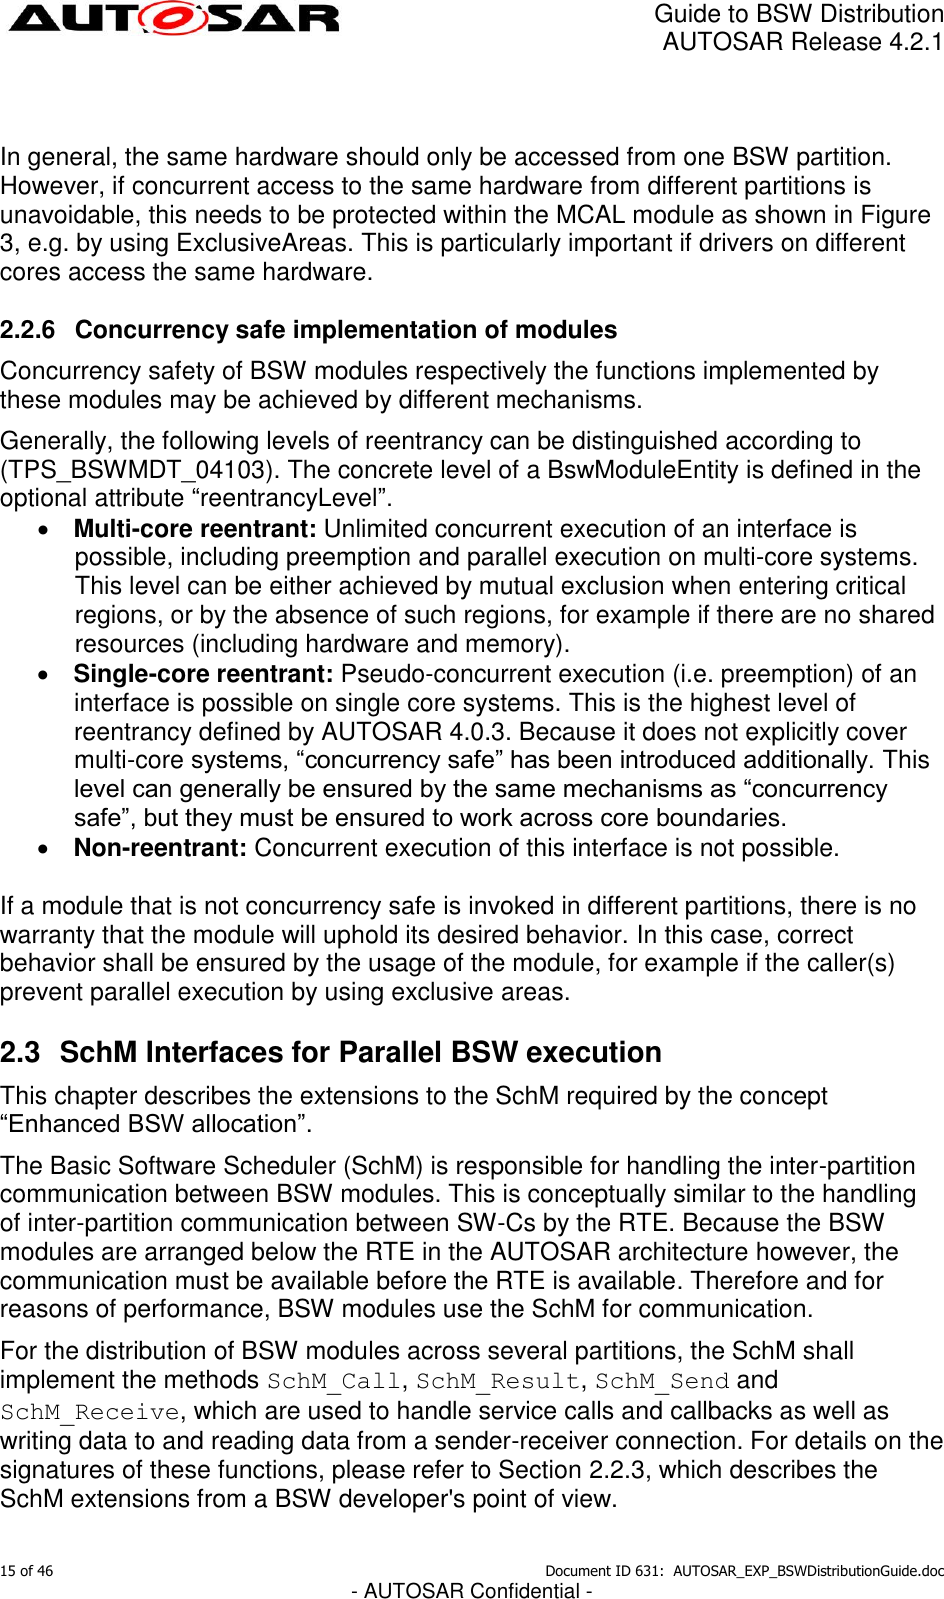 Guide To BSW Distribution AUTOSAR EXP BSWDistribution